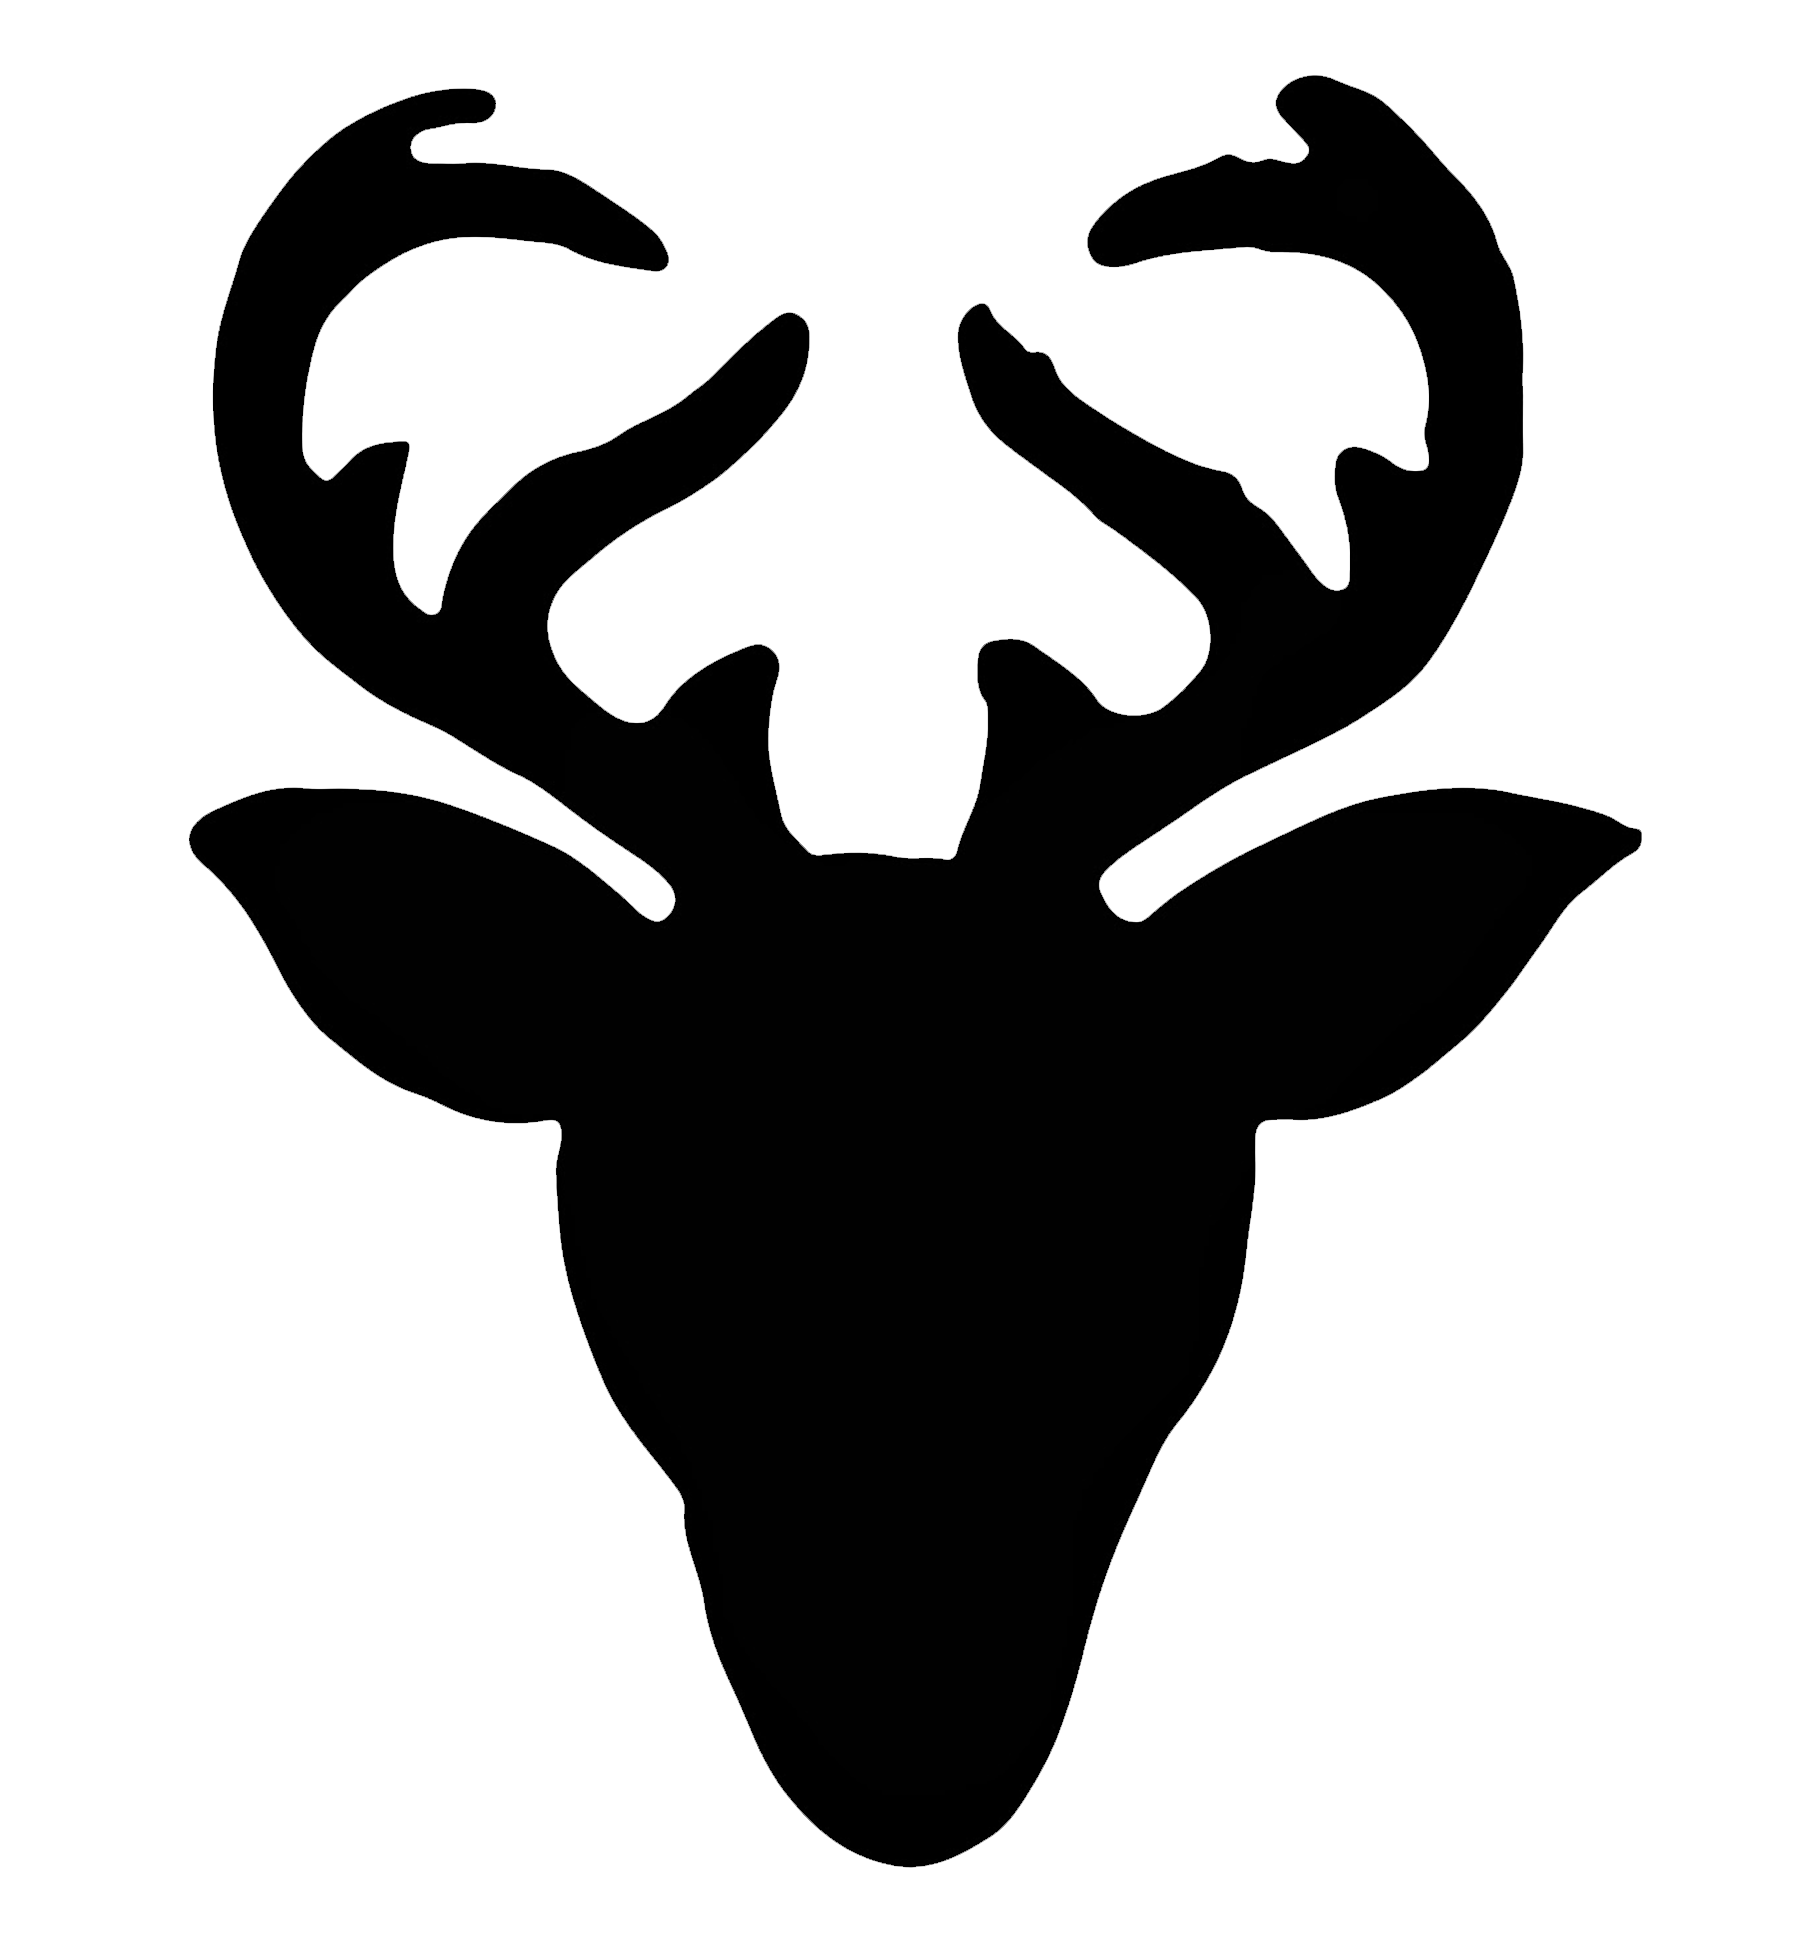 Reindeer sign pinterest silhouette. Hunting clipart deer head